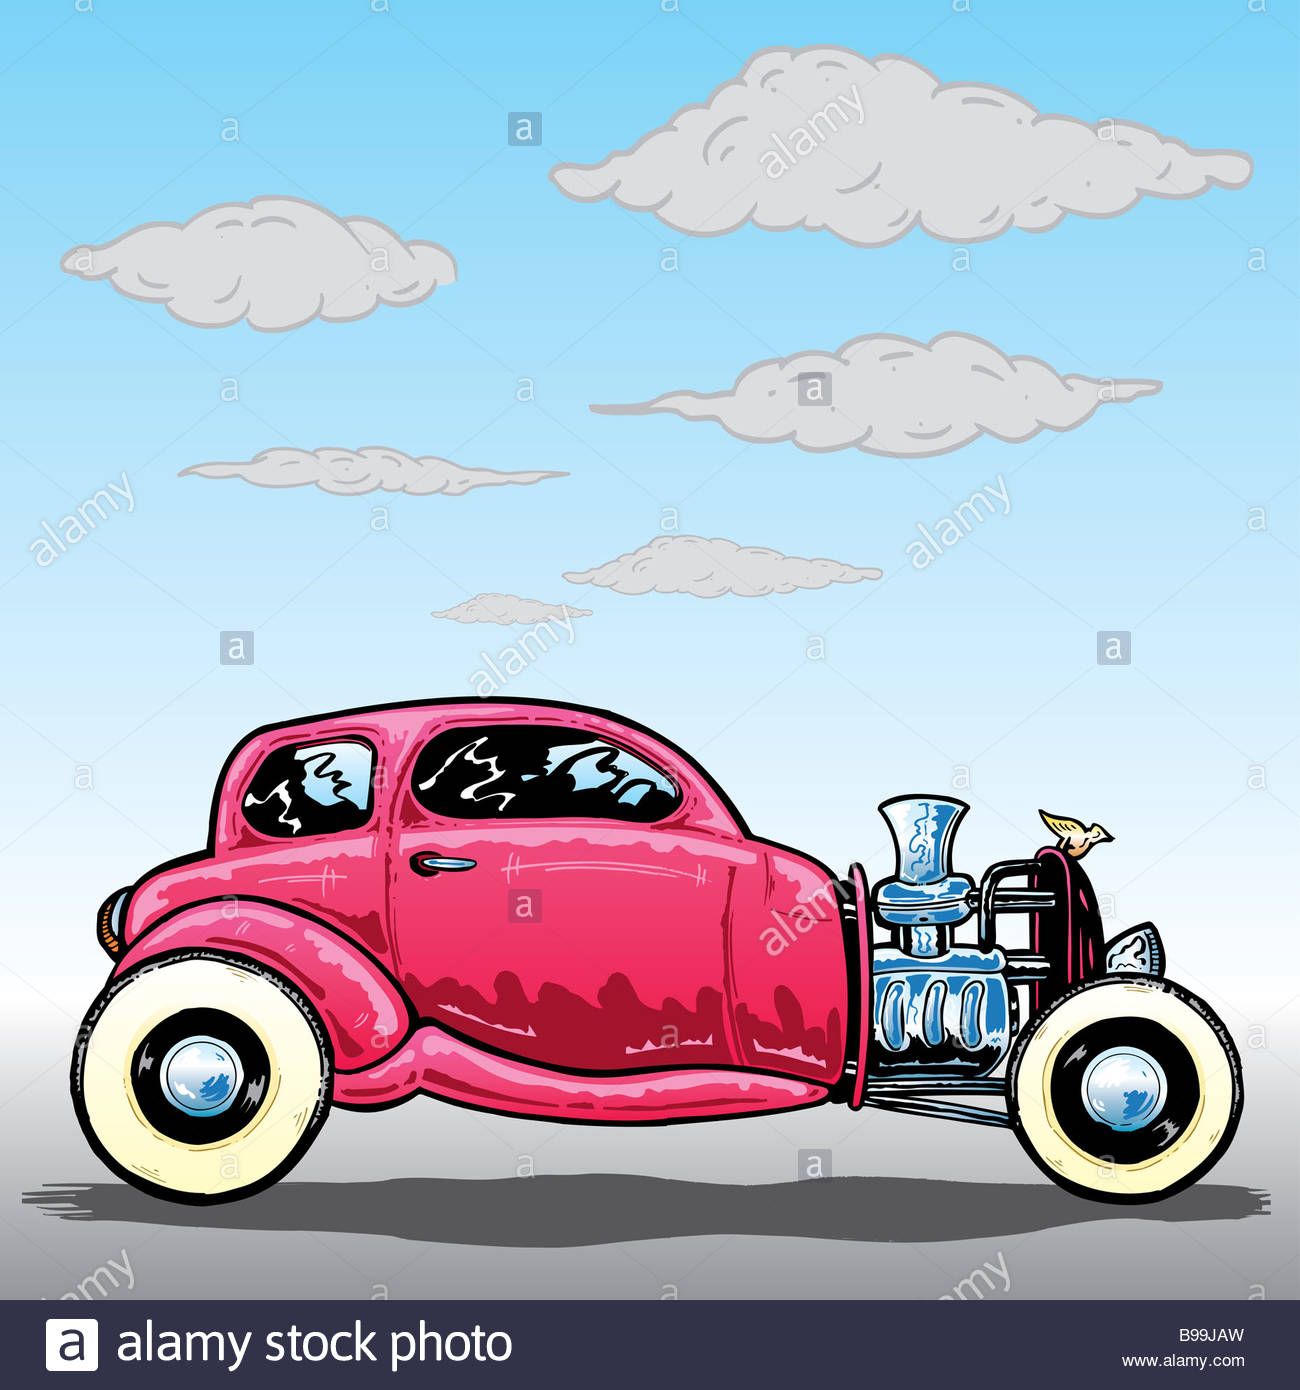 Retro style Hotrod car illustration Stock Photo